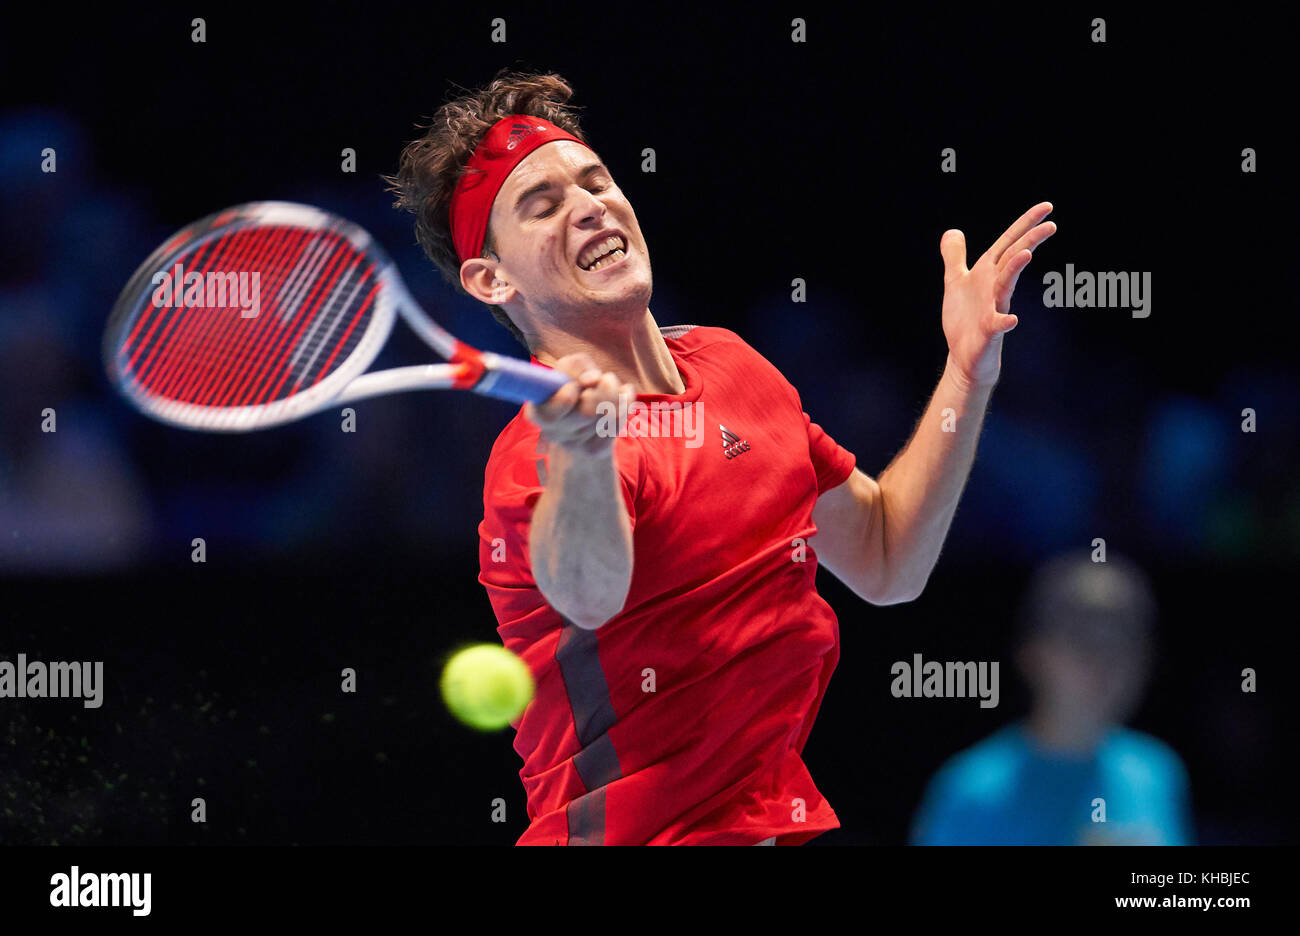 Dominic Thiem Tennis Season High Resolution Stock Photography And Images Alamy